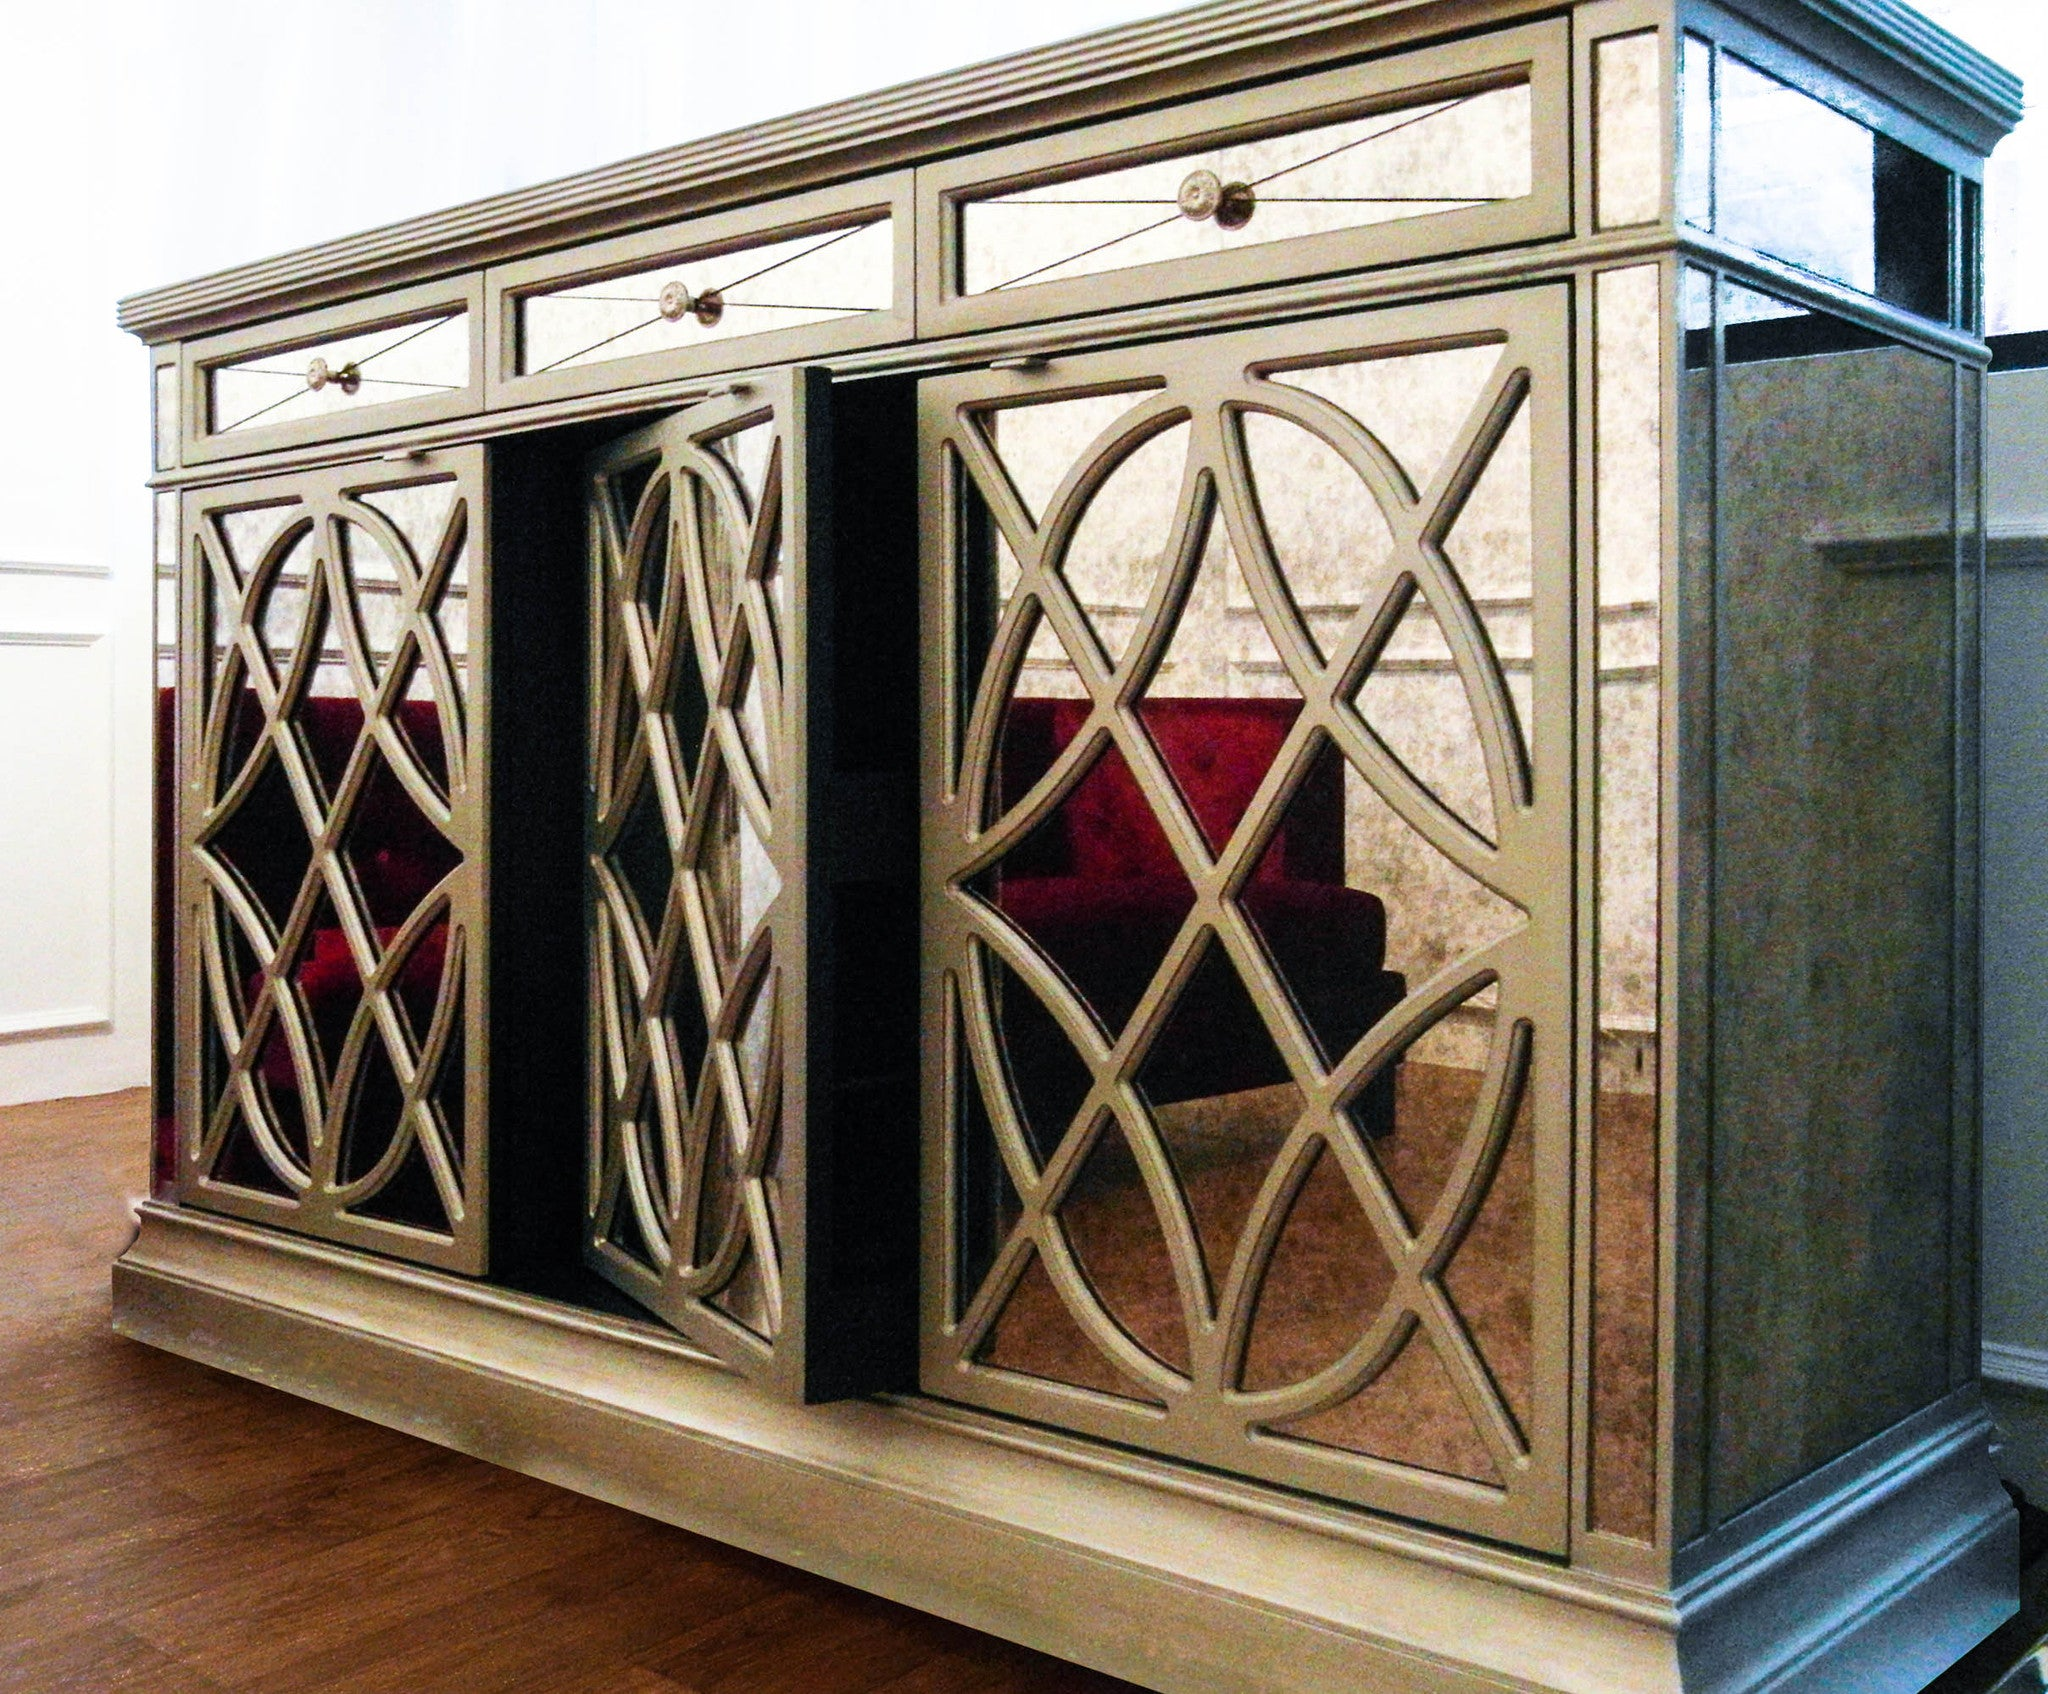 the old world charm mirrored credenza  finnavenuecom – finn avenue -  antique vintage mirrored credenza with red sofa reflection and middleswivel door that is perfect for